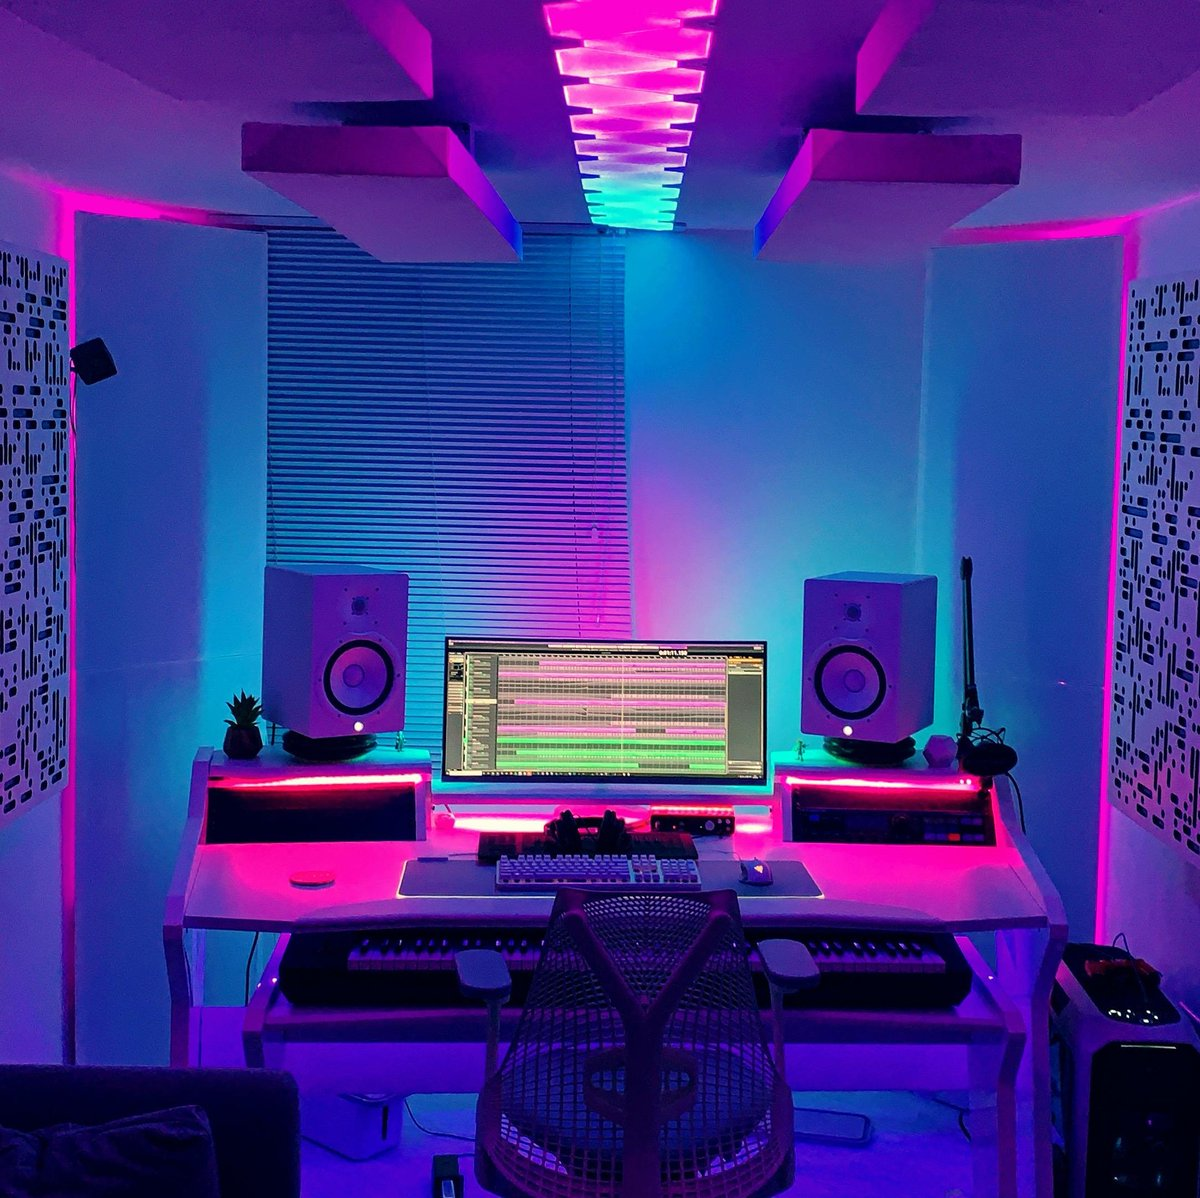 The jaw dropping music studio/gaming space of @ramesesb. This is peak RGB and i love it.  #setup #setups #gamingsetup #gamingsetups #setupgamer #gamersetup #gamersetups #rgbeverything #rgbsetup #rgbsetups #rgbdesk #rgbgaming #rgbgamer #studiosetup #studiovisit #setuptour pic.twitter.com/CvKuSVpaE6